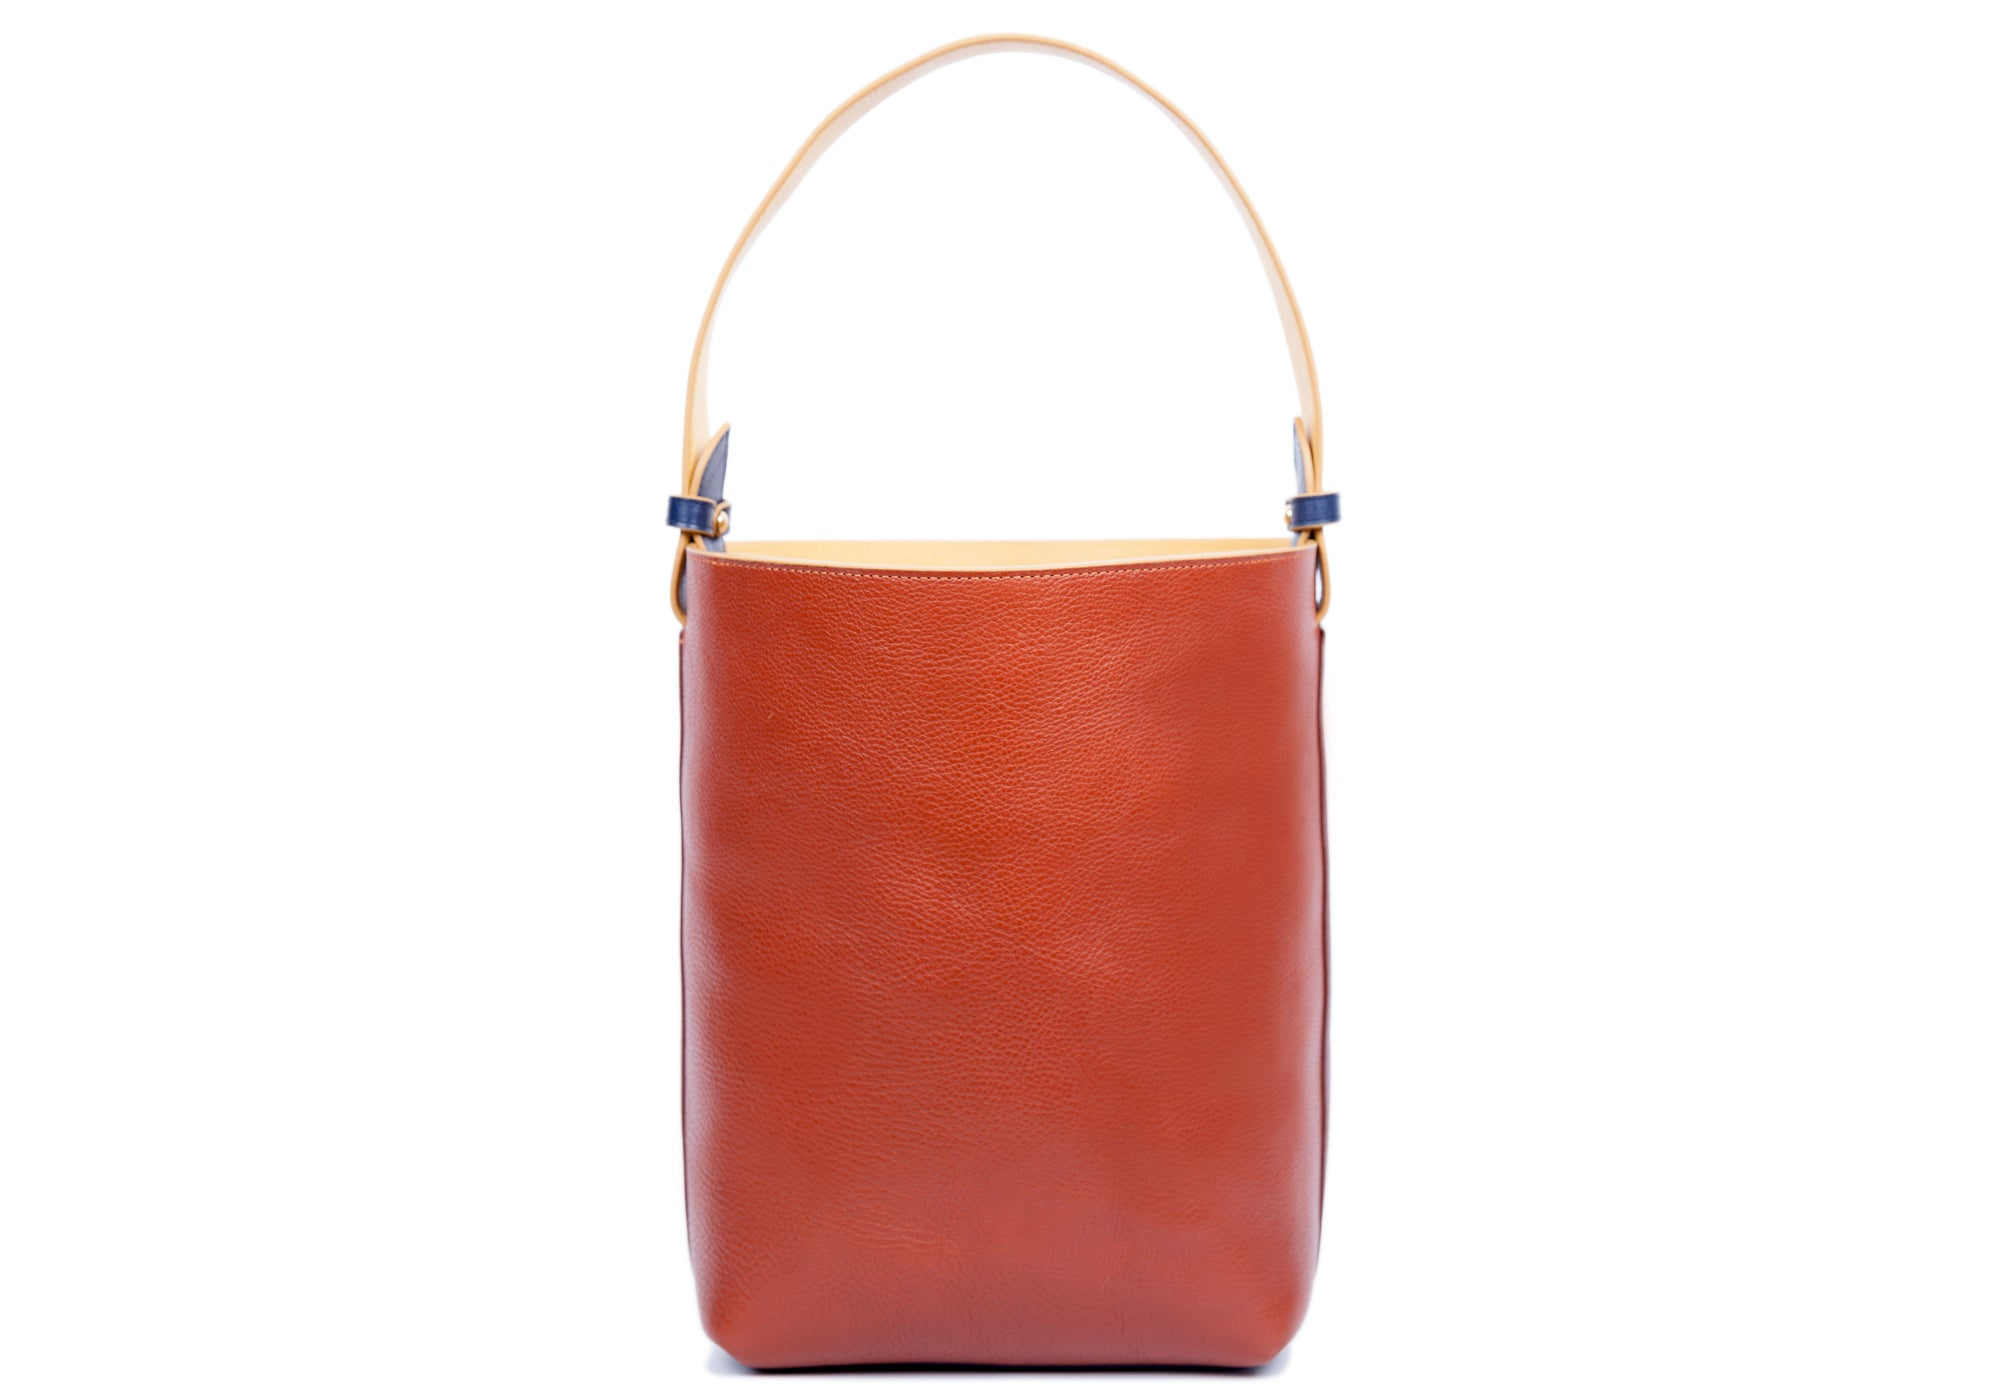 Leather Bucket Shoulder Bag Chestnut-Saddle Tan